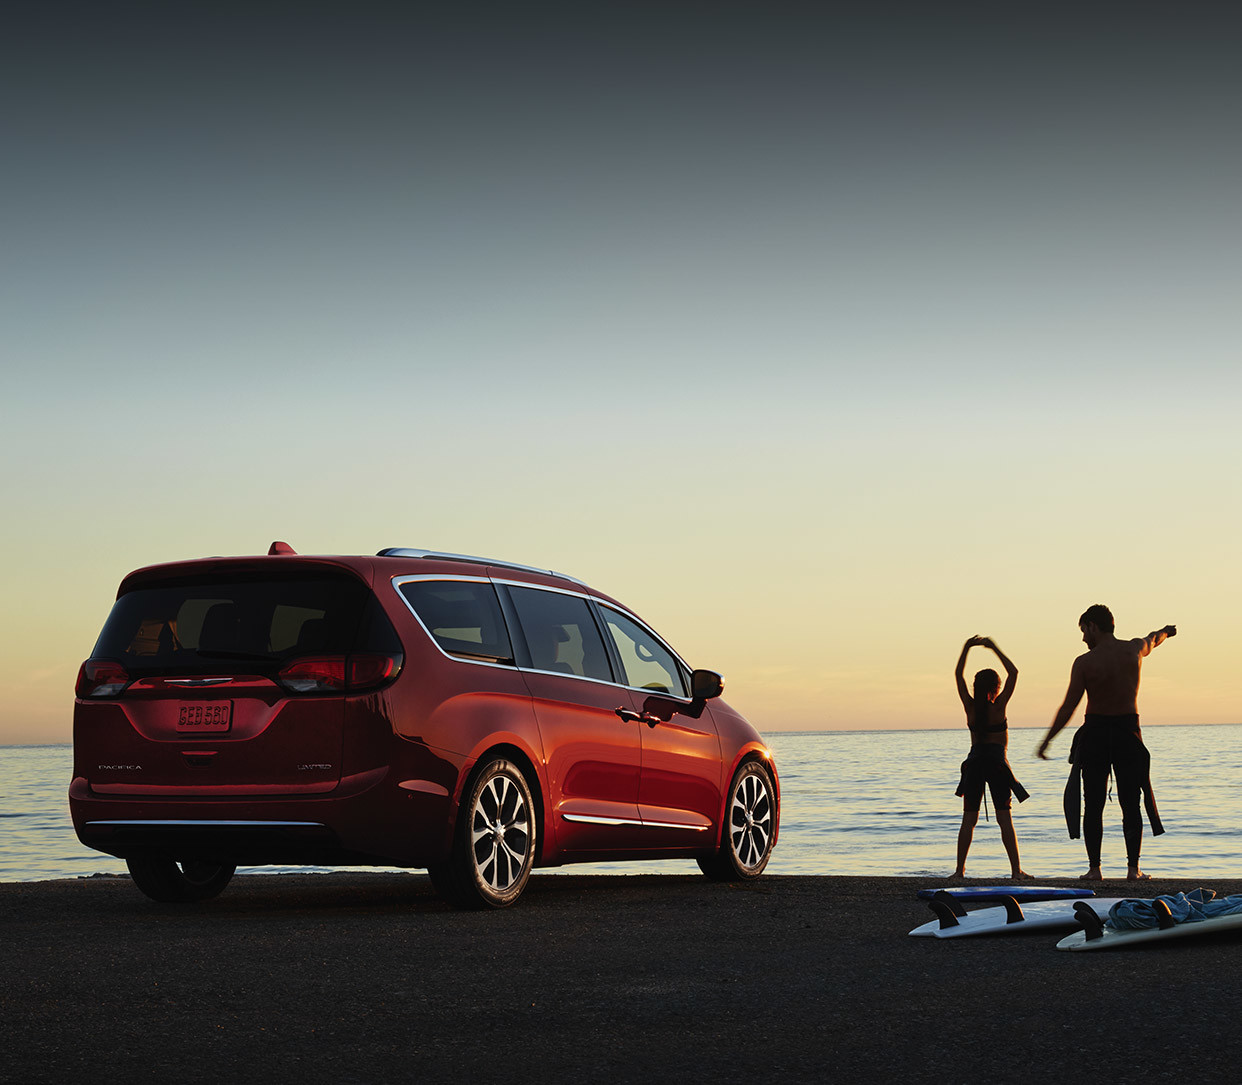 Dad and daughter with surfboards stretching next to a red 2020 Chrysler Pacifica.